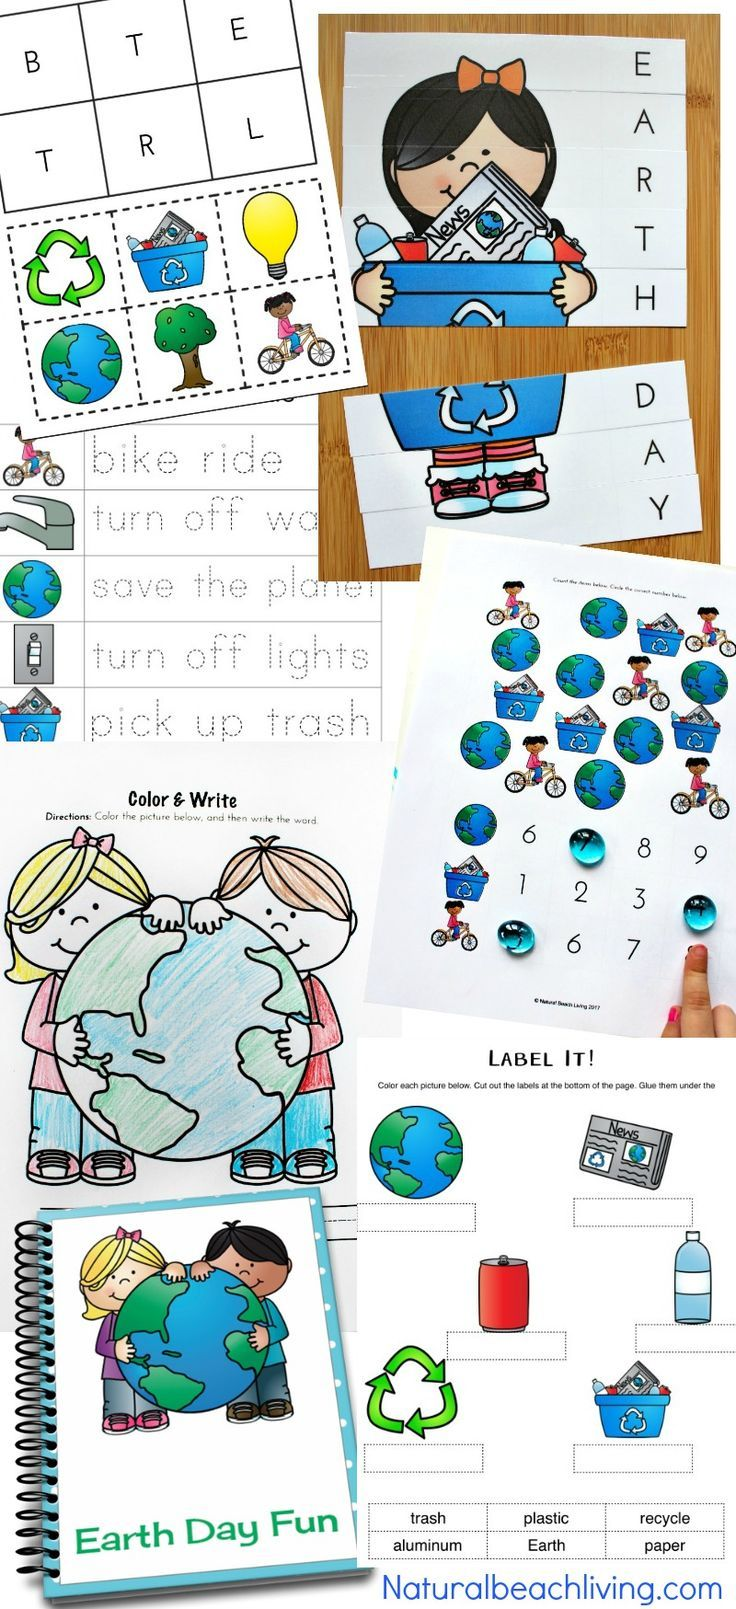 Spring coloring pages for second graders - 25 Best Ideas About Earth Day Coloring Pages On Pinterest Earth Coloring Pages Earth Week 2016 And Earth Day Worksheets